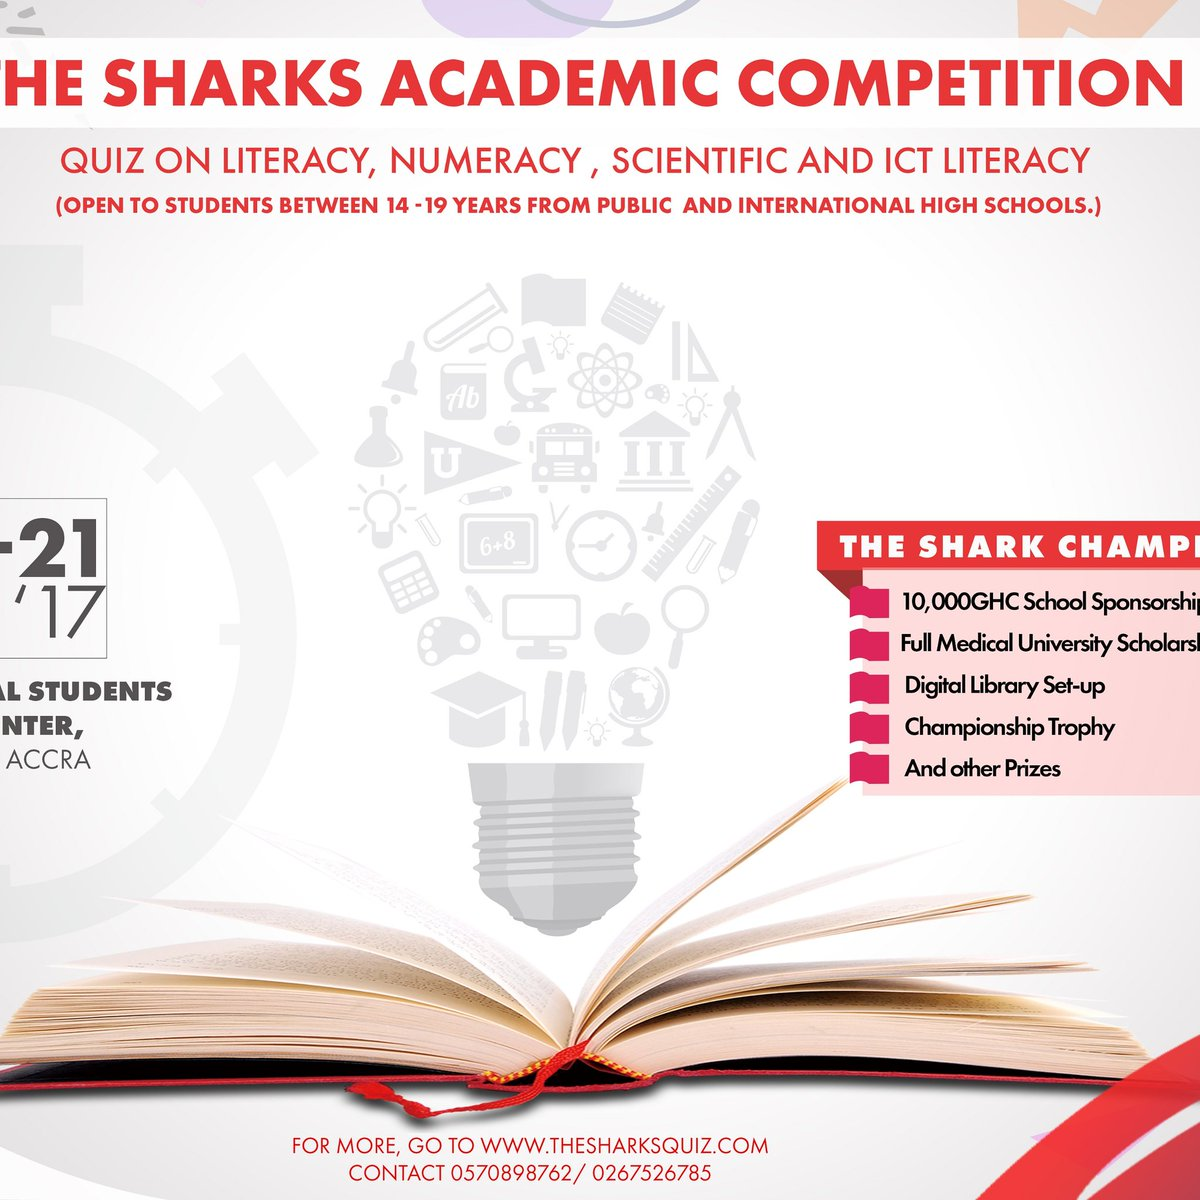 #TheSharks GH is happening exactly one month from today. 10,000 GHS, Championship Trophy etc #RiseToTheChallenge #Willyourschoolcontest.<br>http://pic.twitter.com/iLtSkmltlY